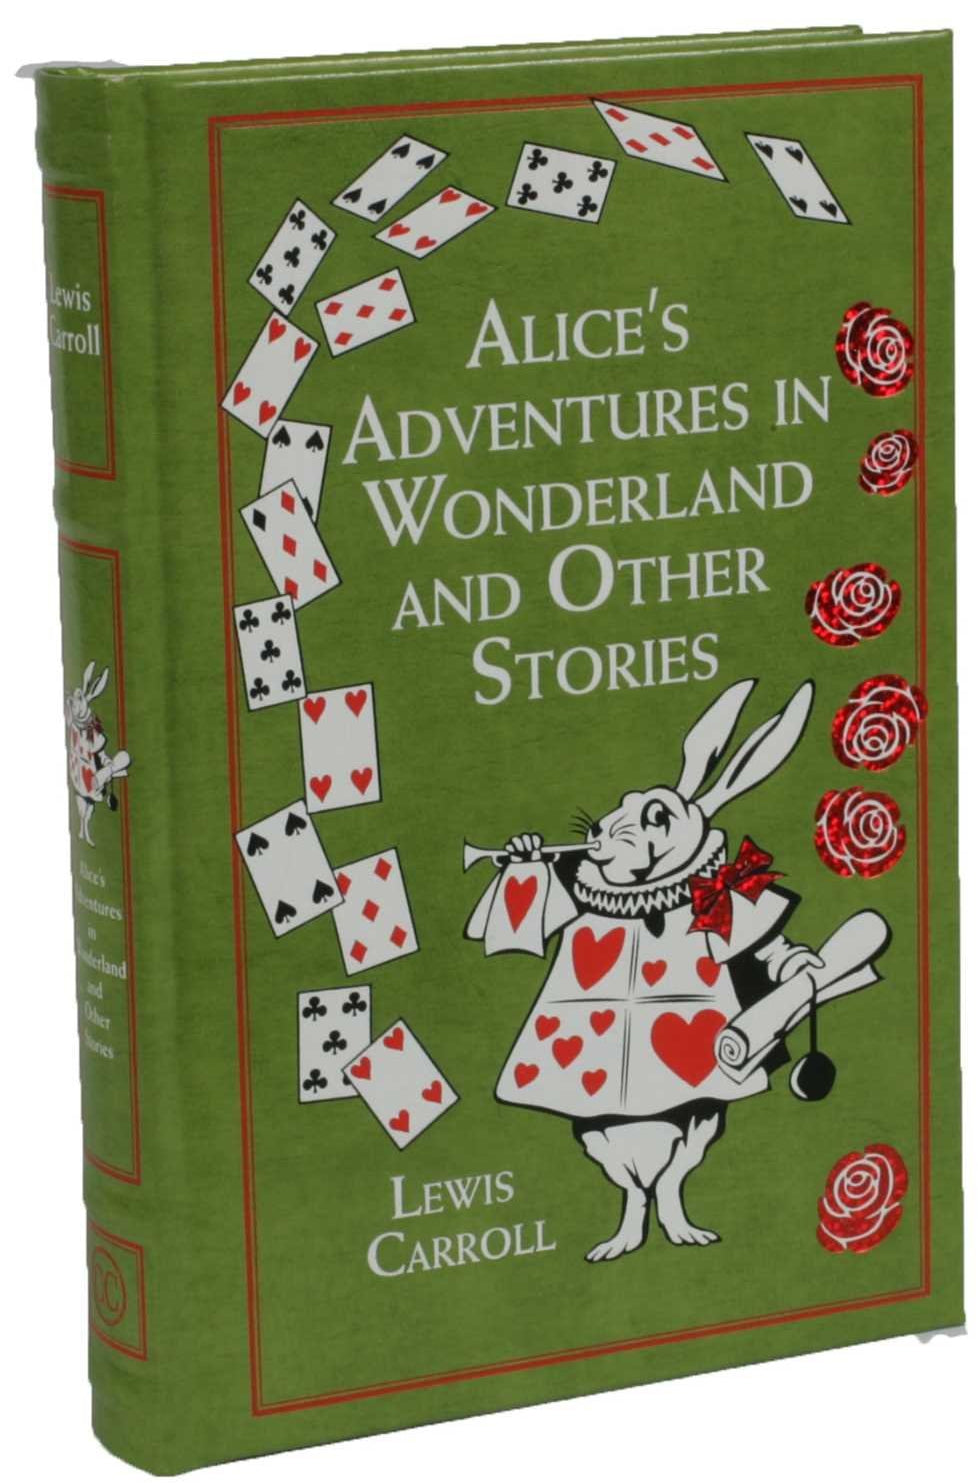 Alice's Adventures in Wonderland and Other Stories -- DragonSpace